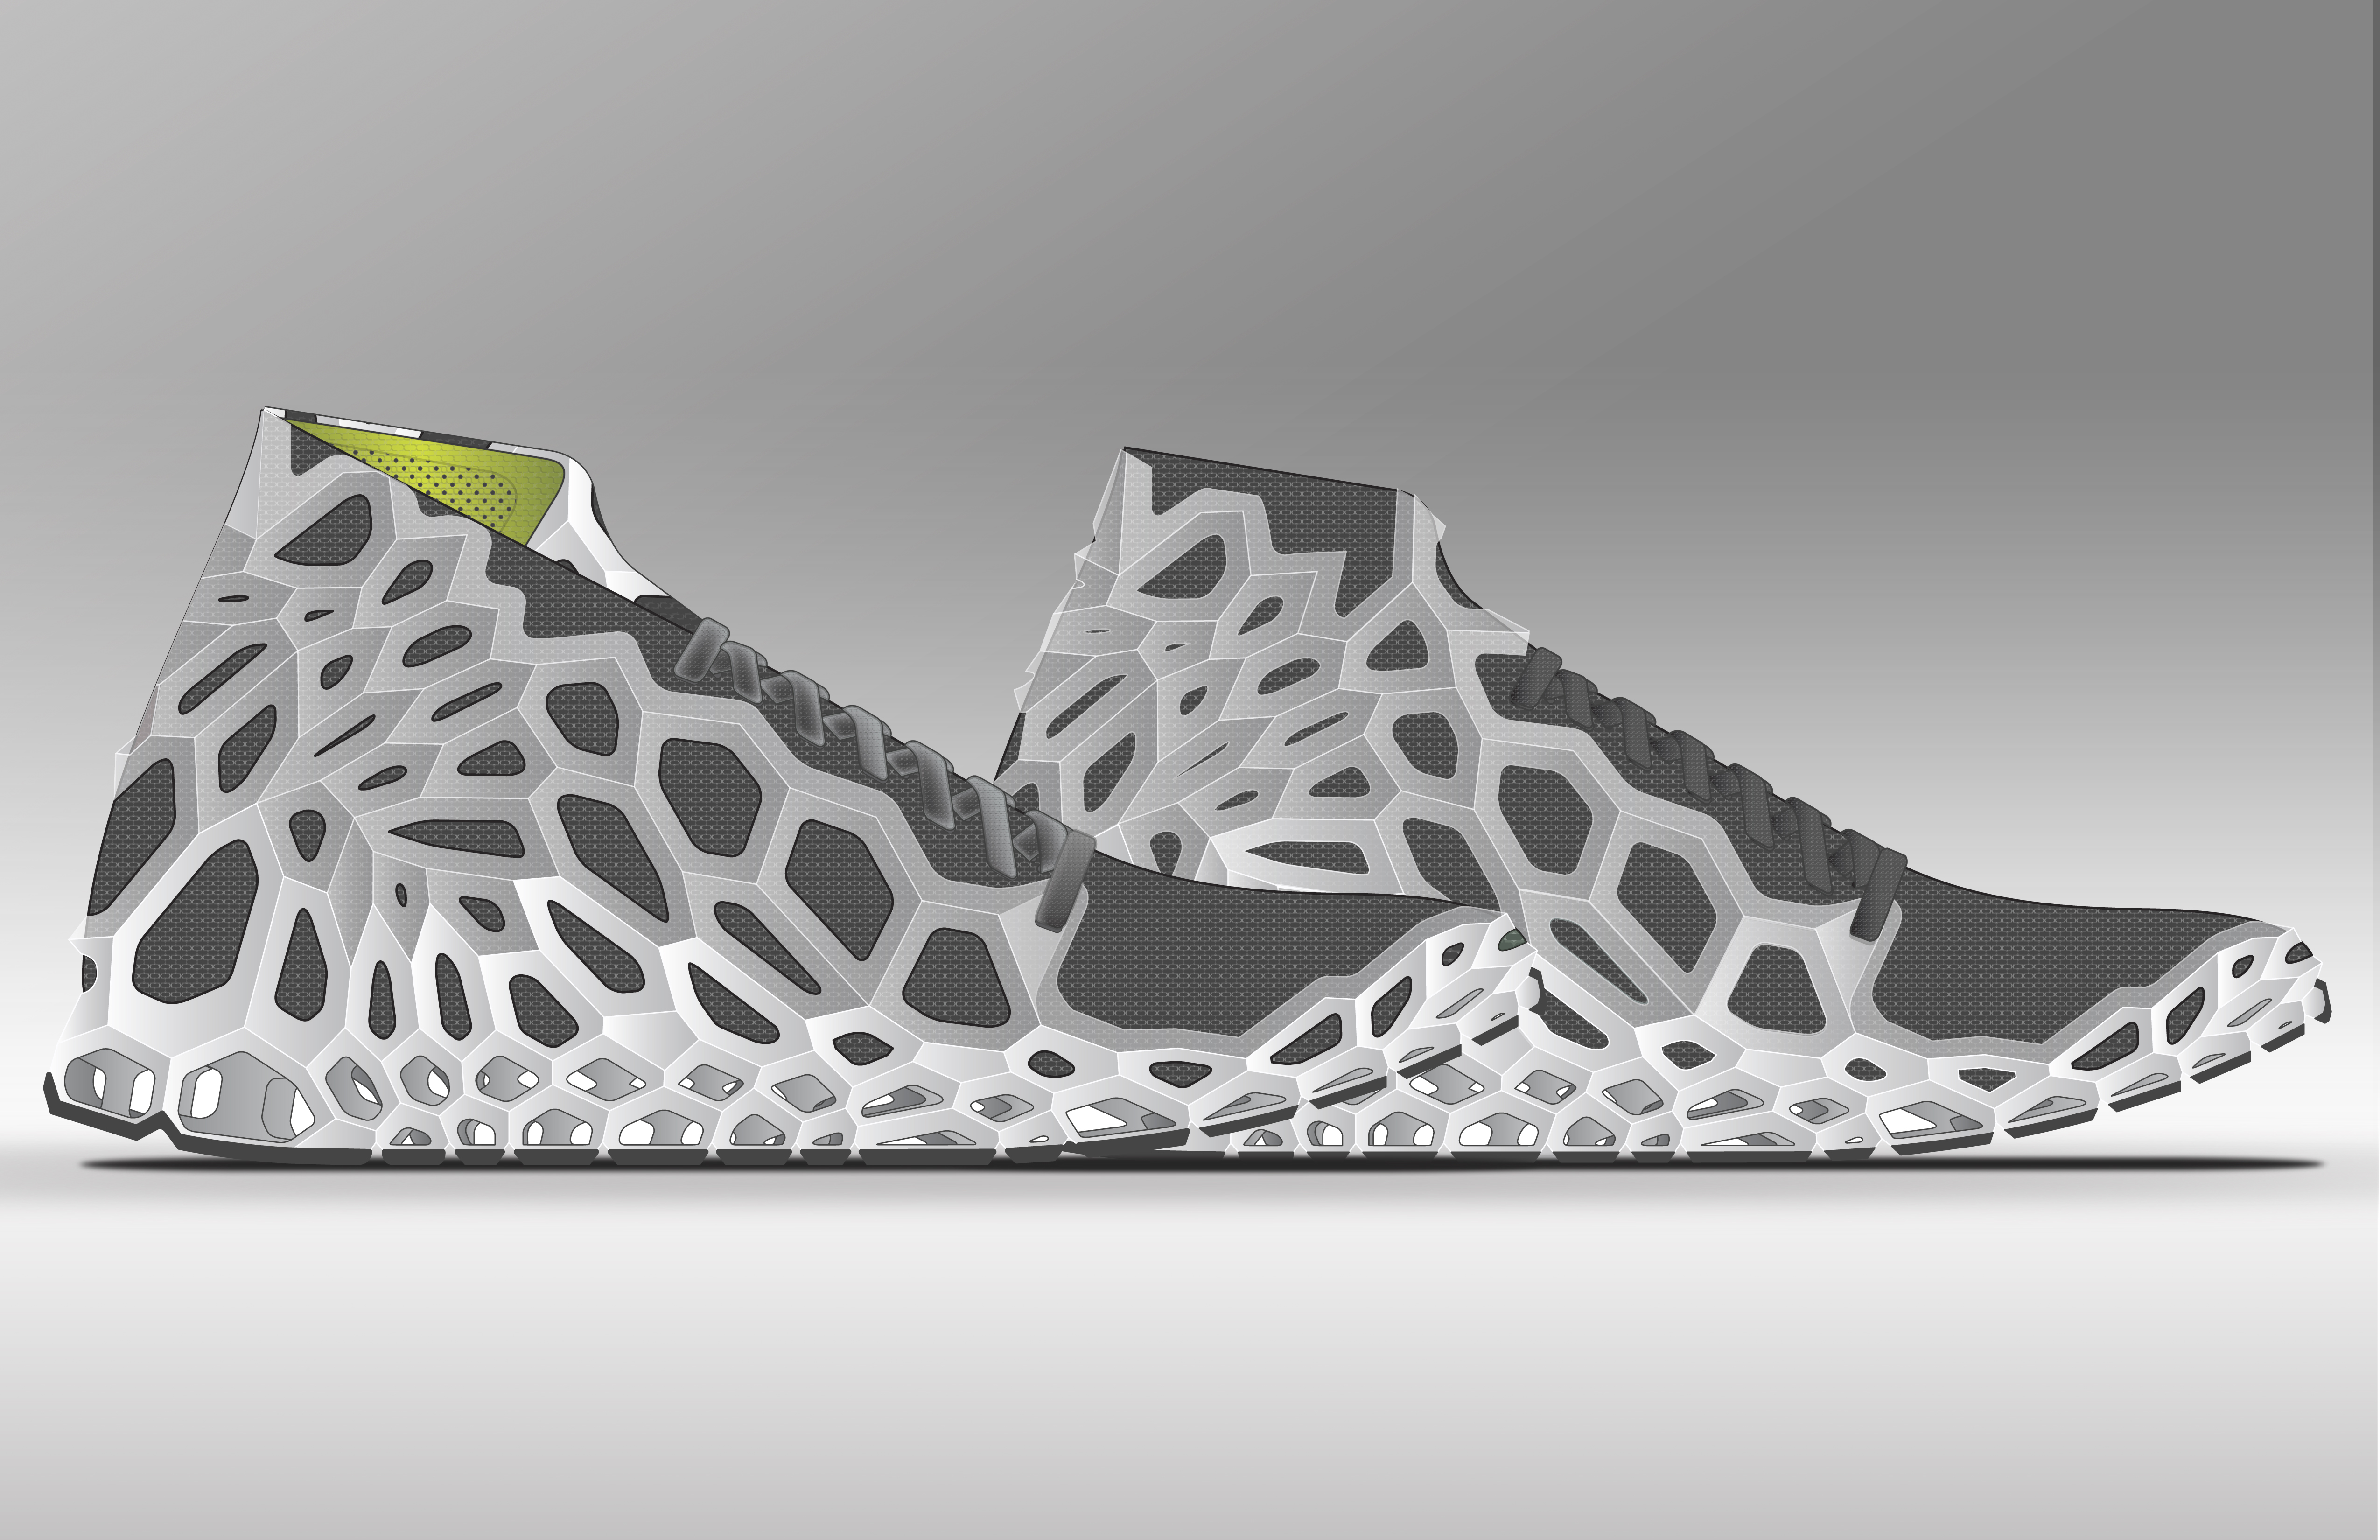 3a22c9fe4326 74 FOOTWEAR DESIGN CONSULTING